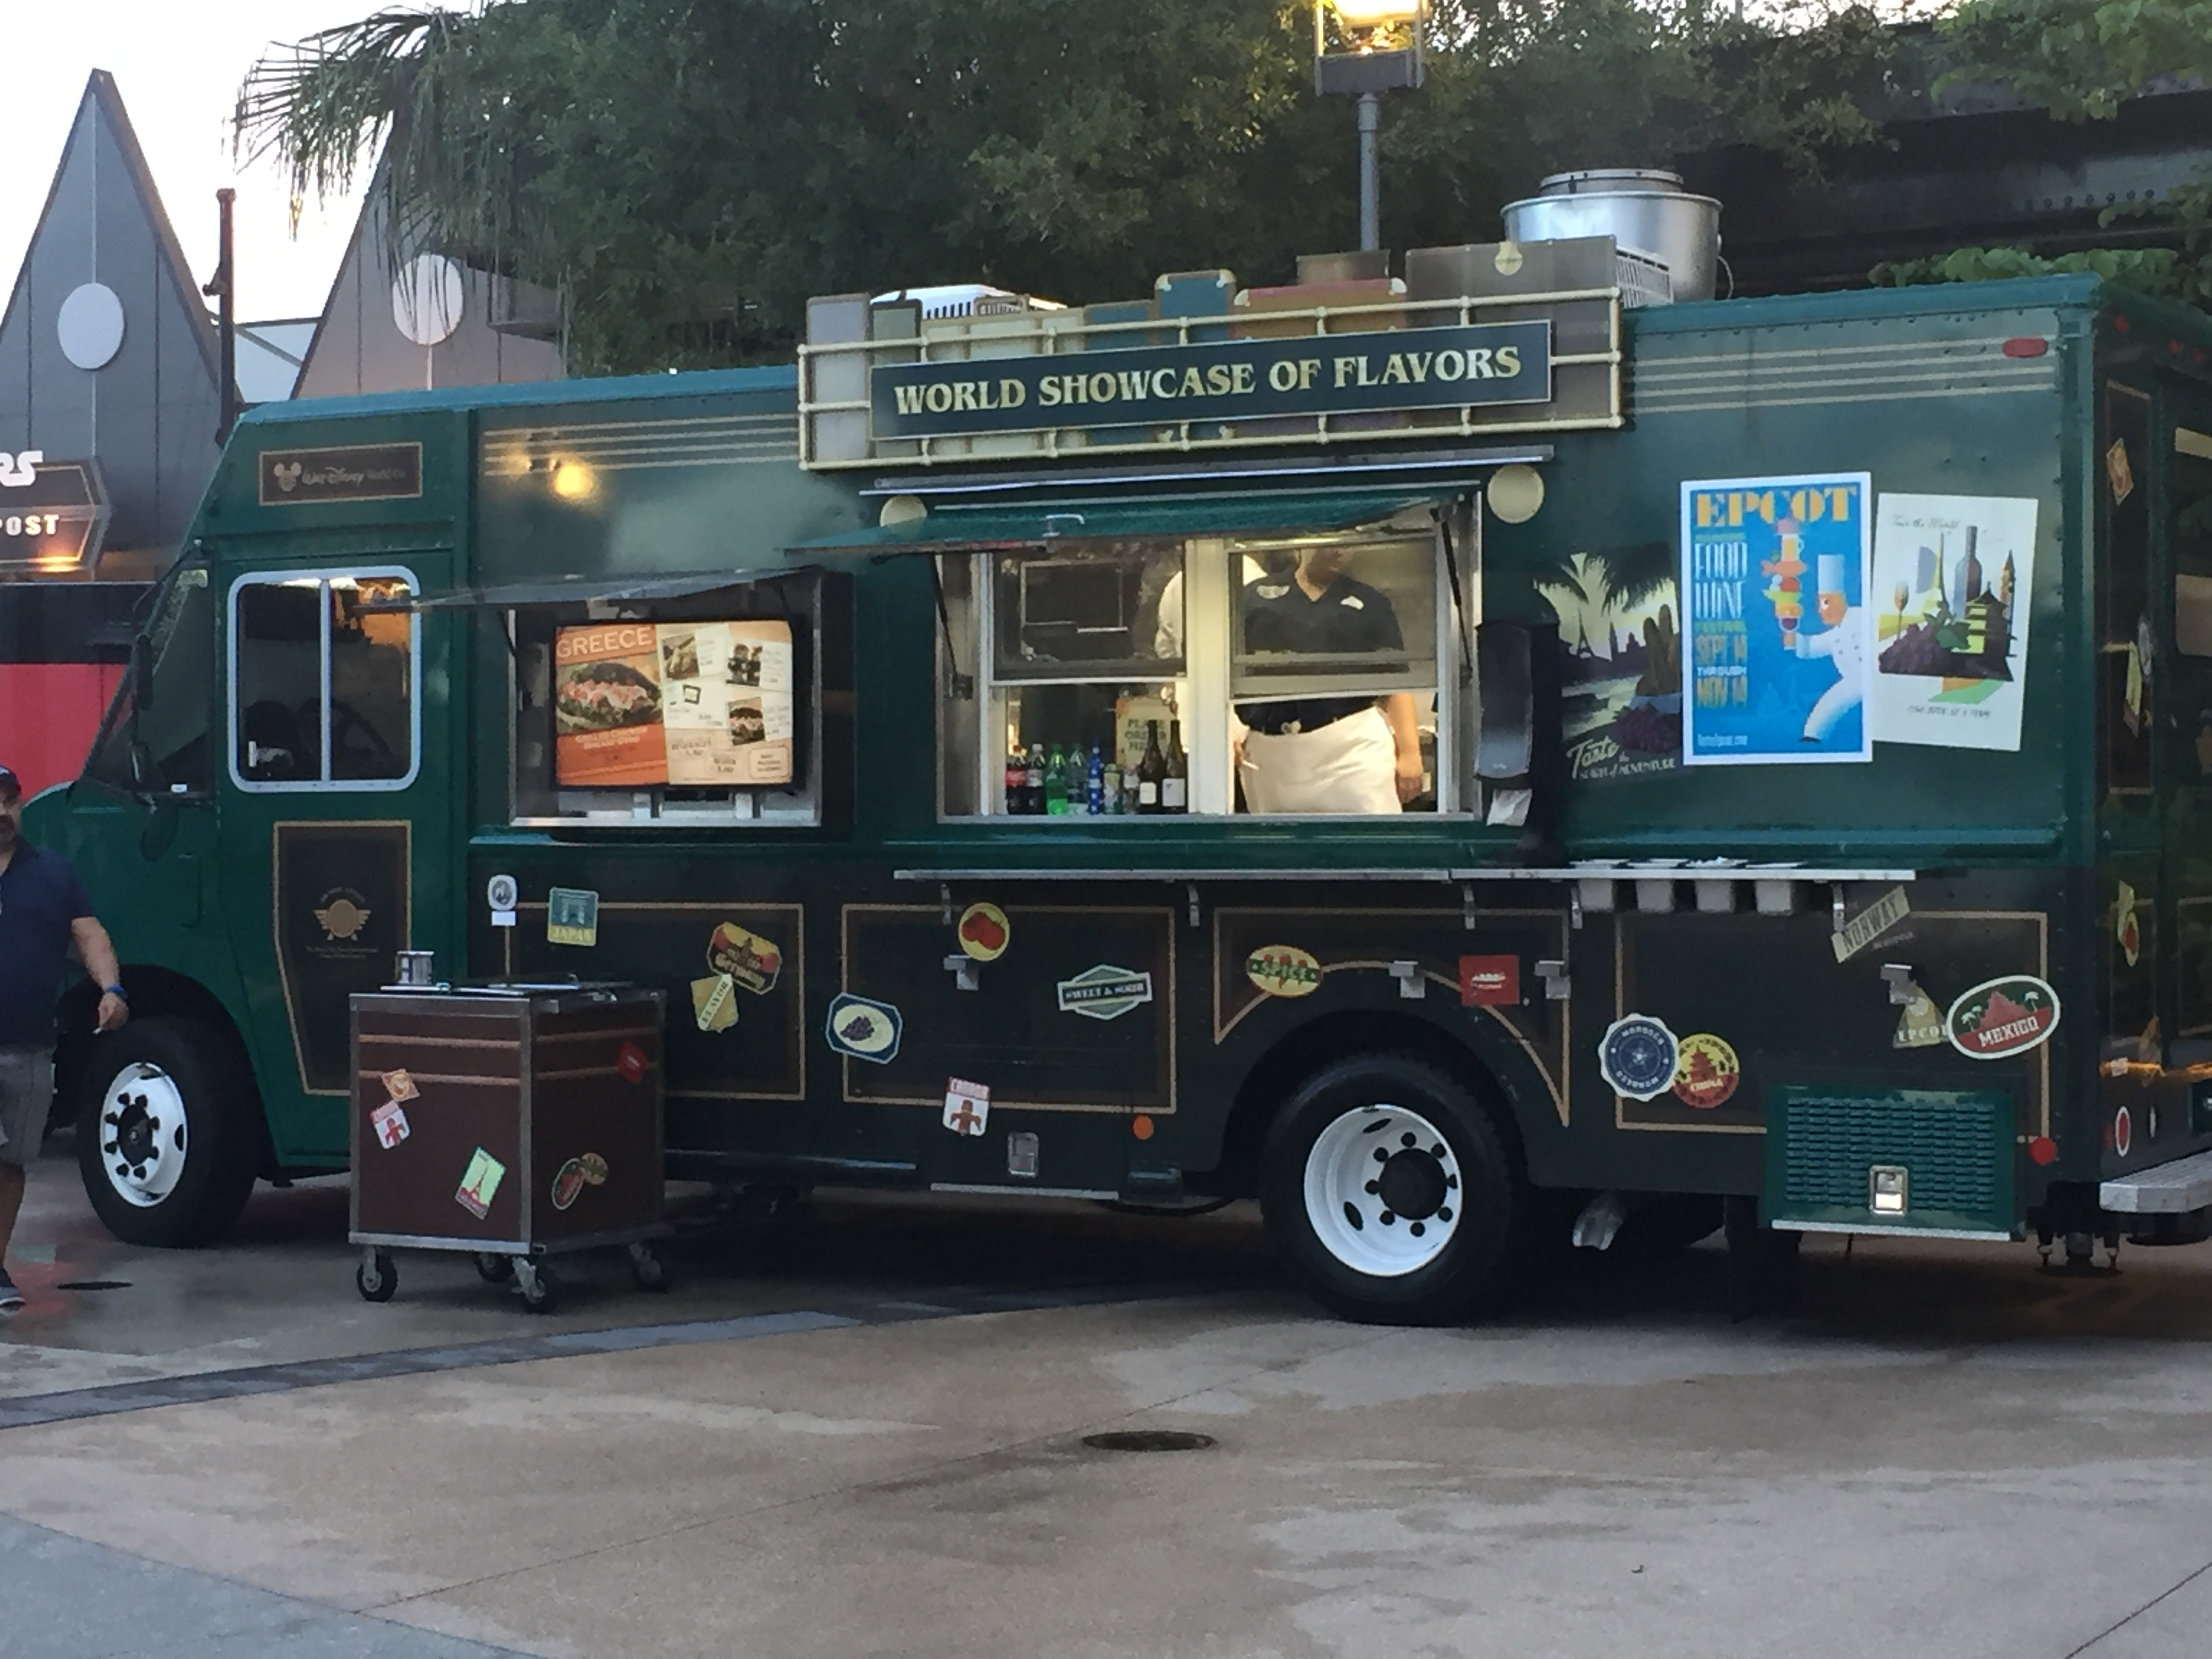 The World Showcase of Flavors Food Truck